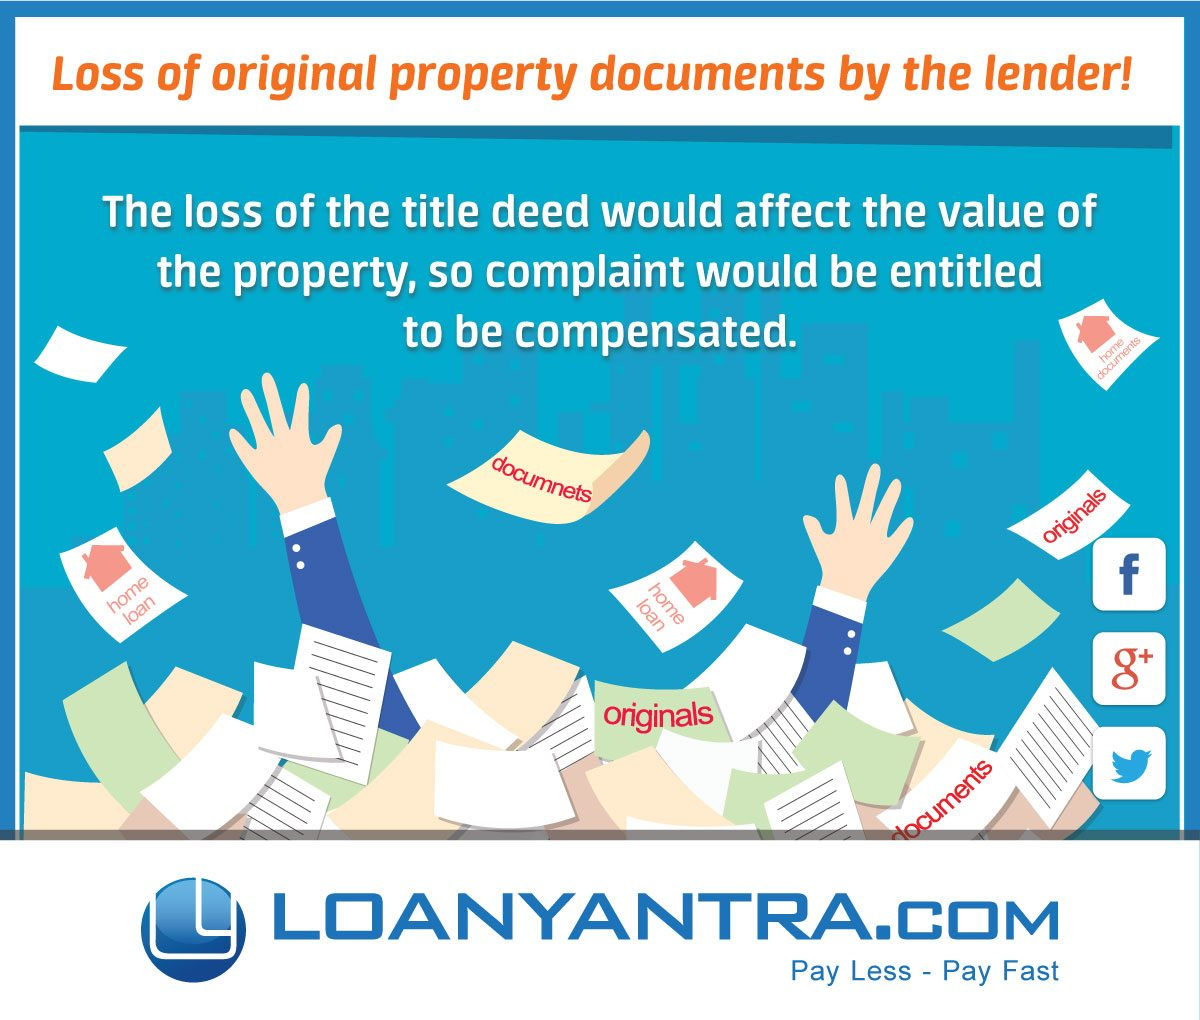 Banks Liable for Loss of Original Property Documents